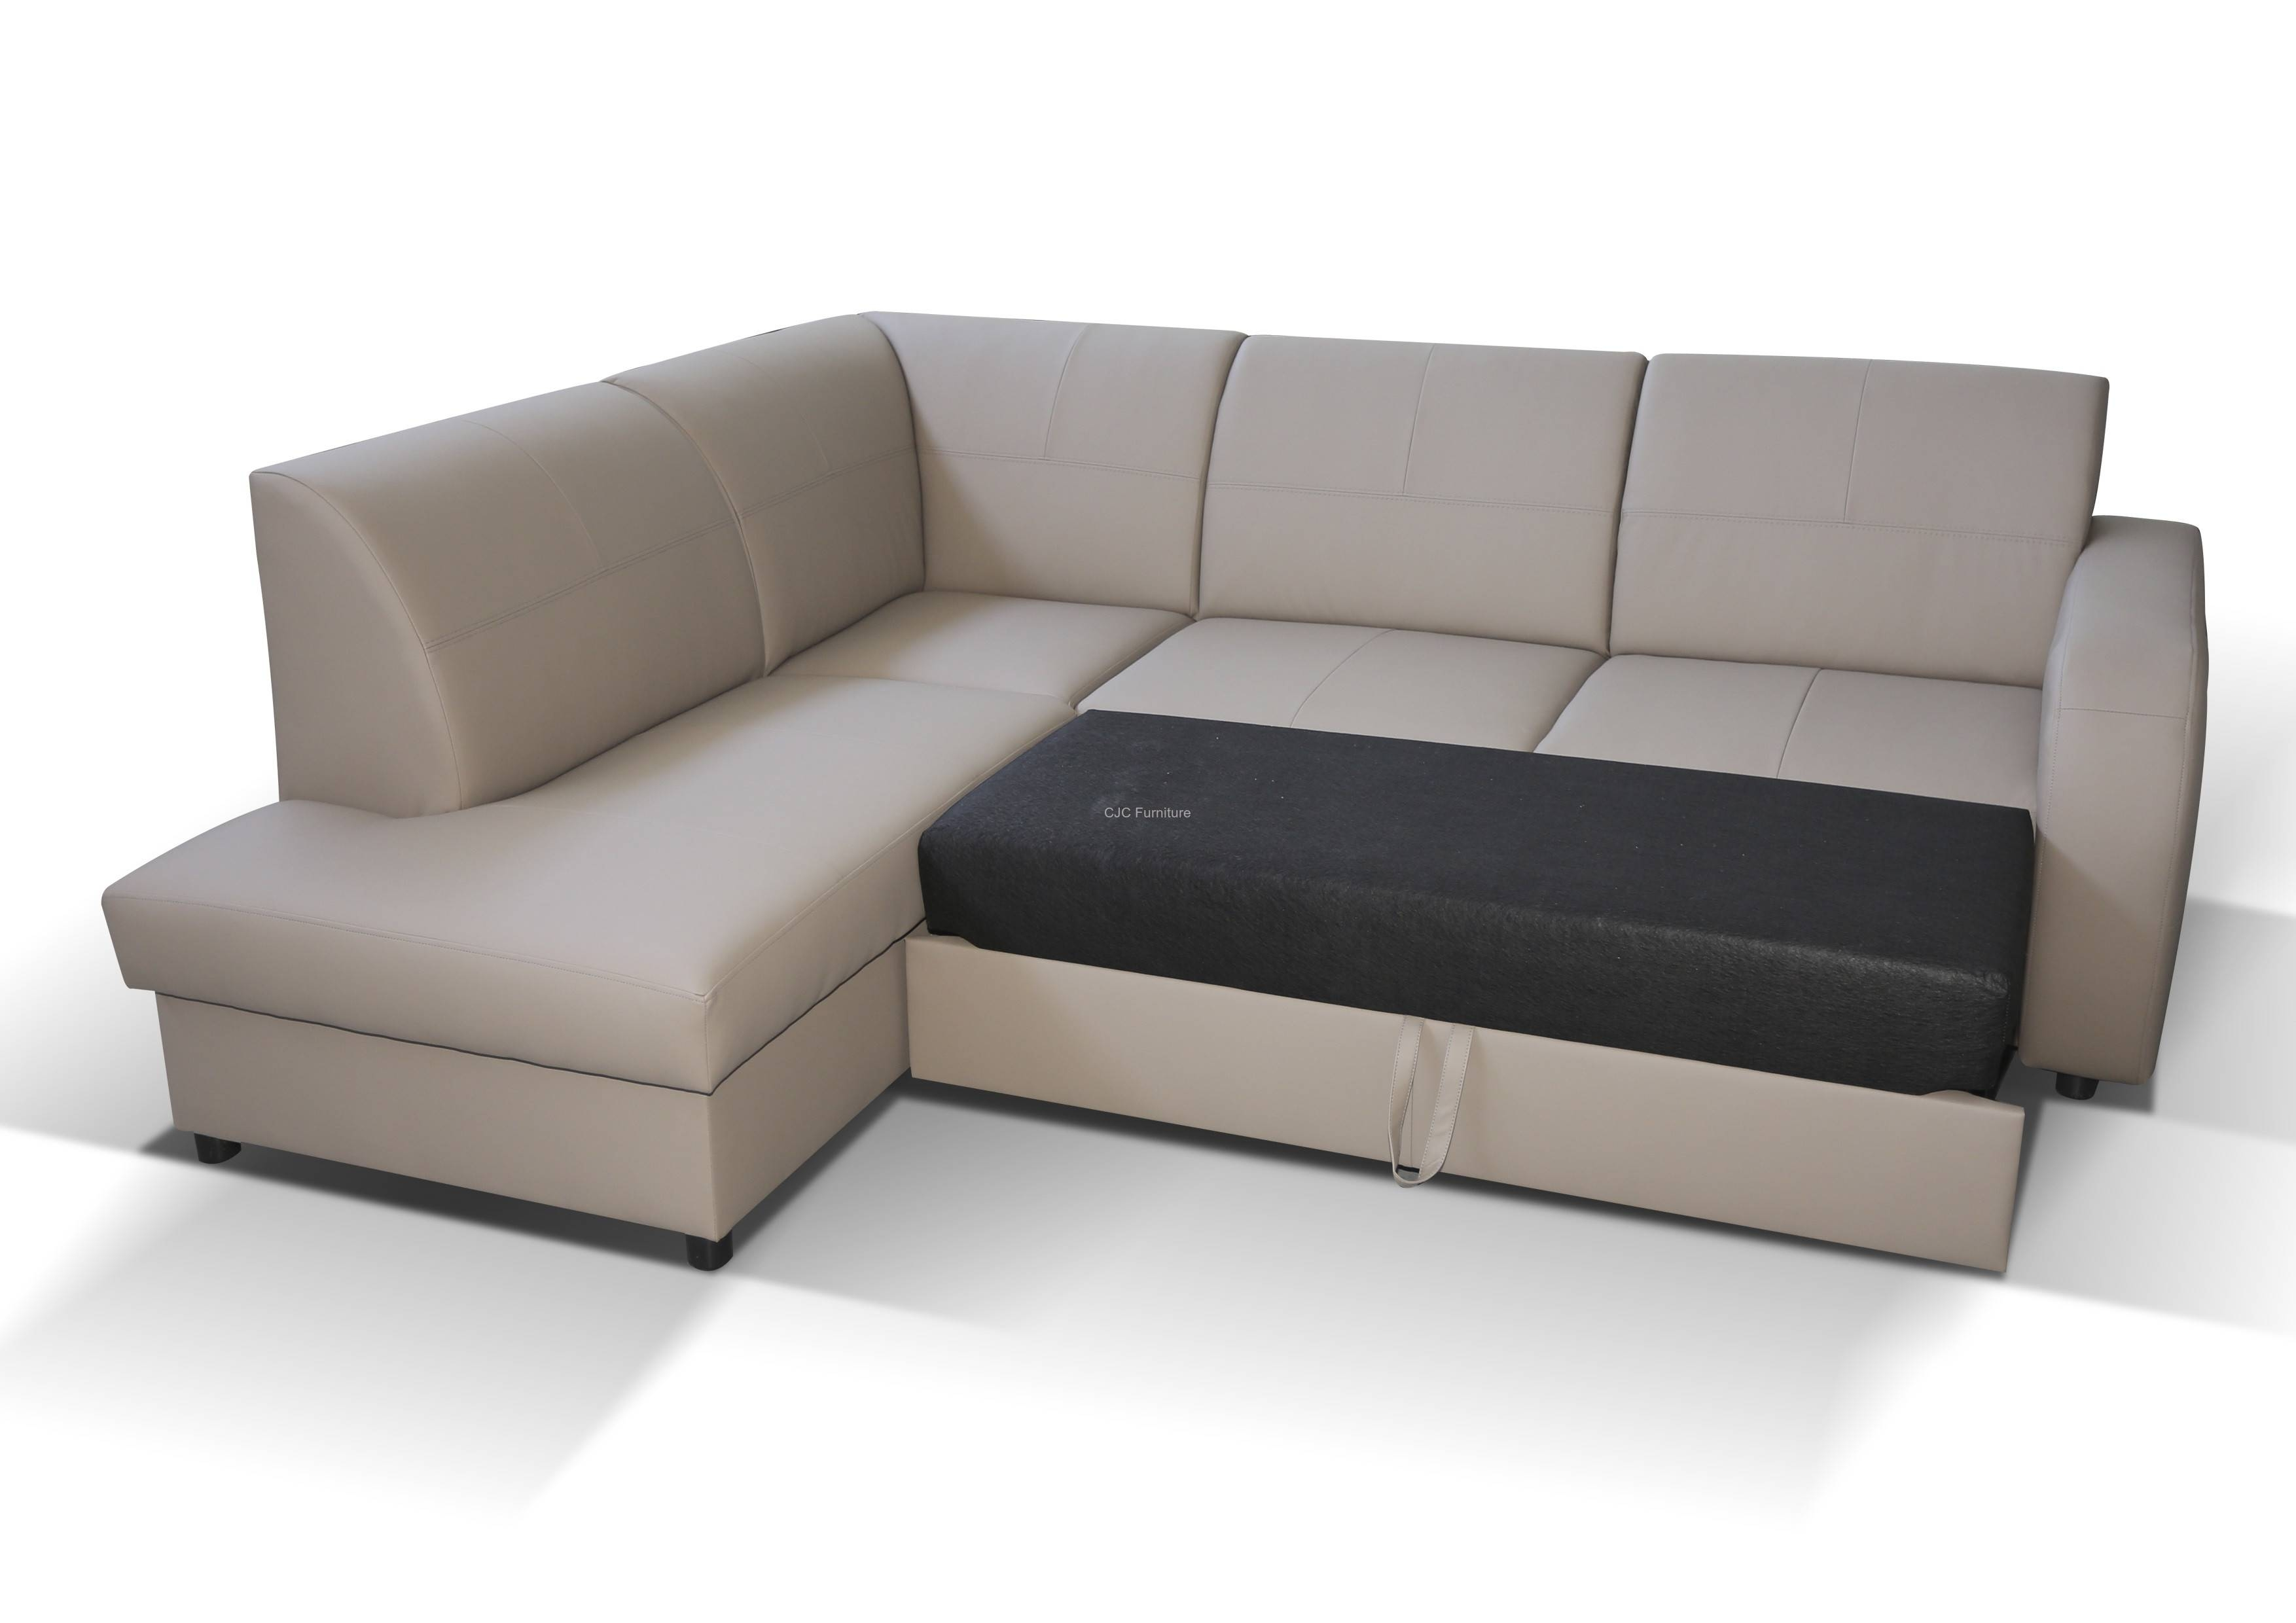 Modern Corner Sofa Bed With Storage | Eva Furniture throughout Storage Sofa Beds (Image 14 of 30)